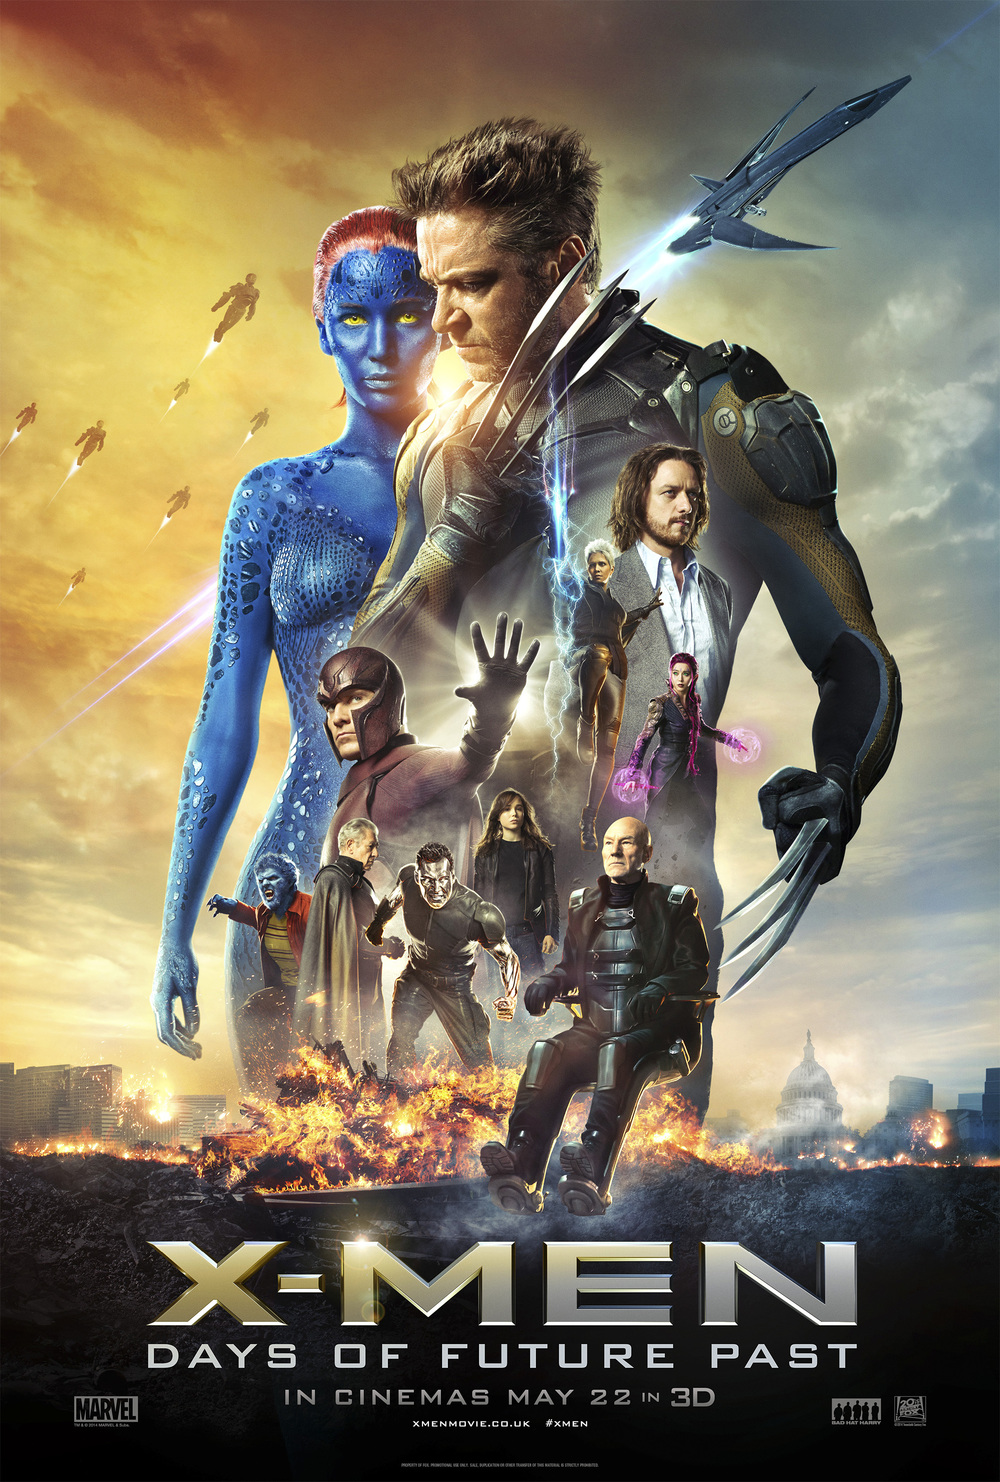 X-Men-Days-of-Future-Past-Movie-Poster.jpg